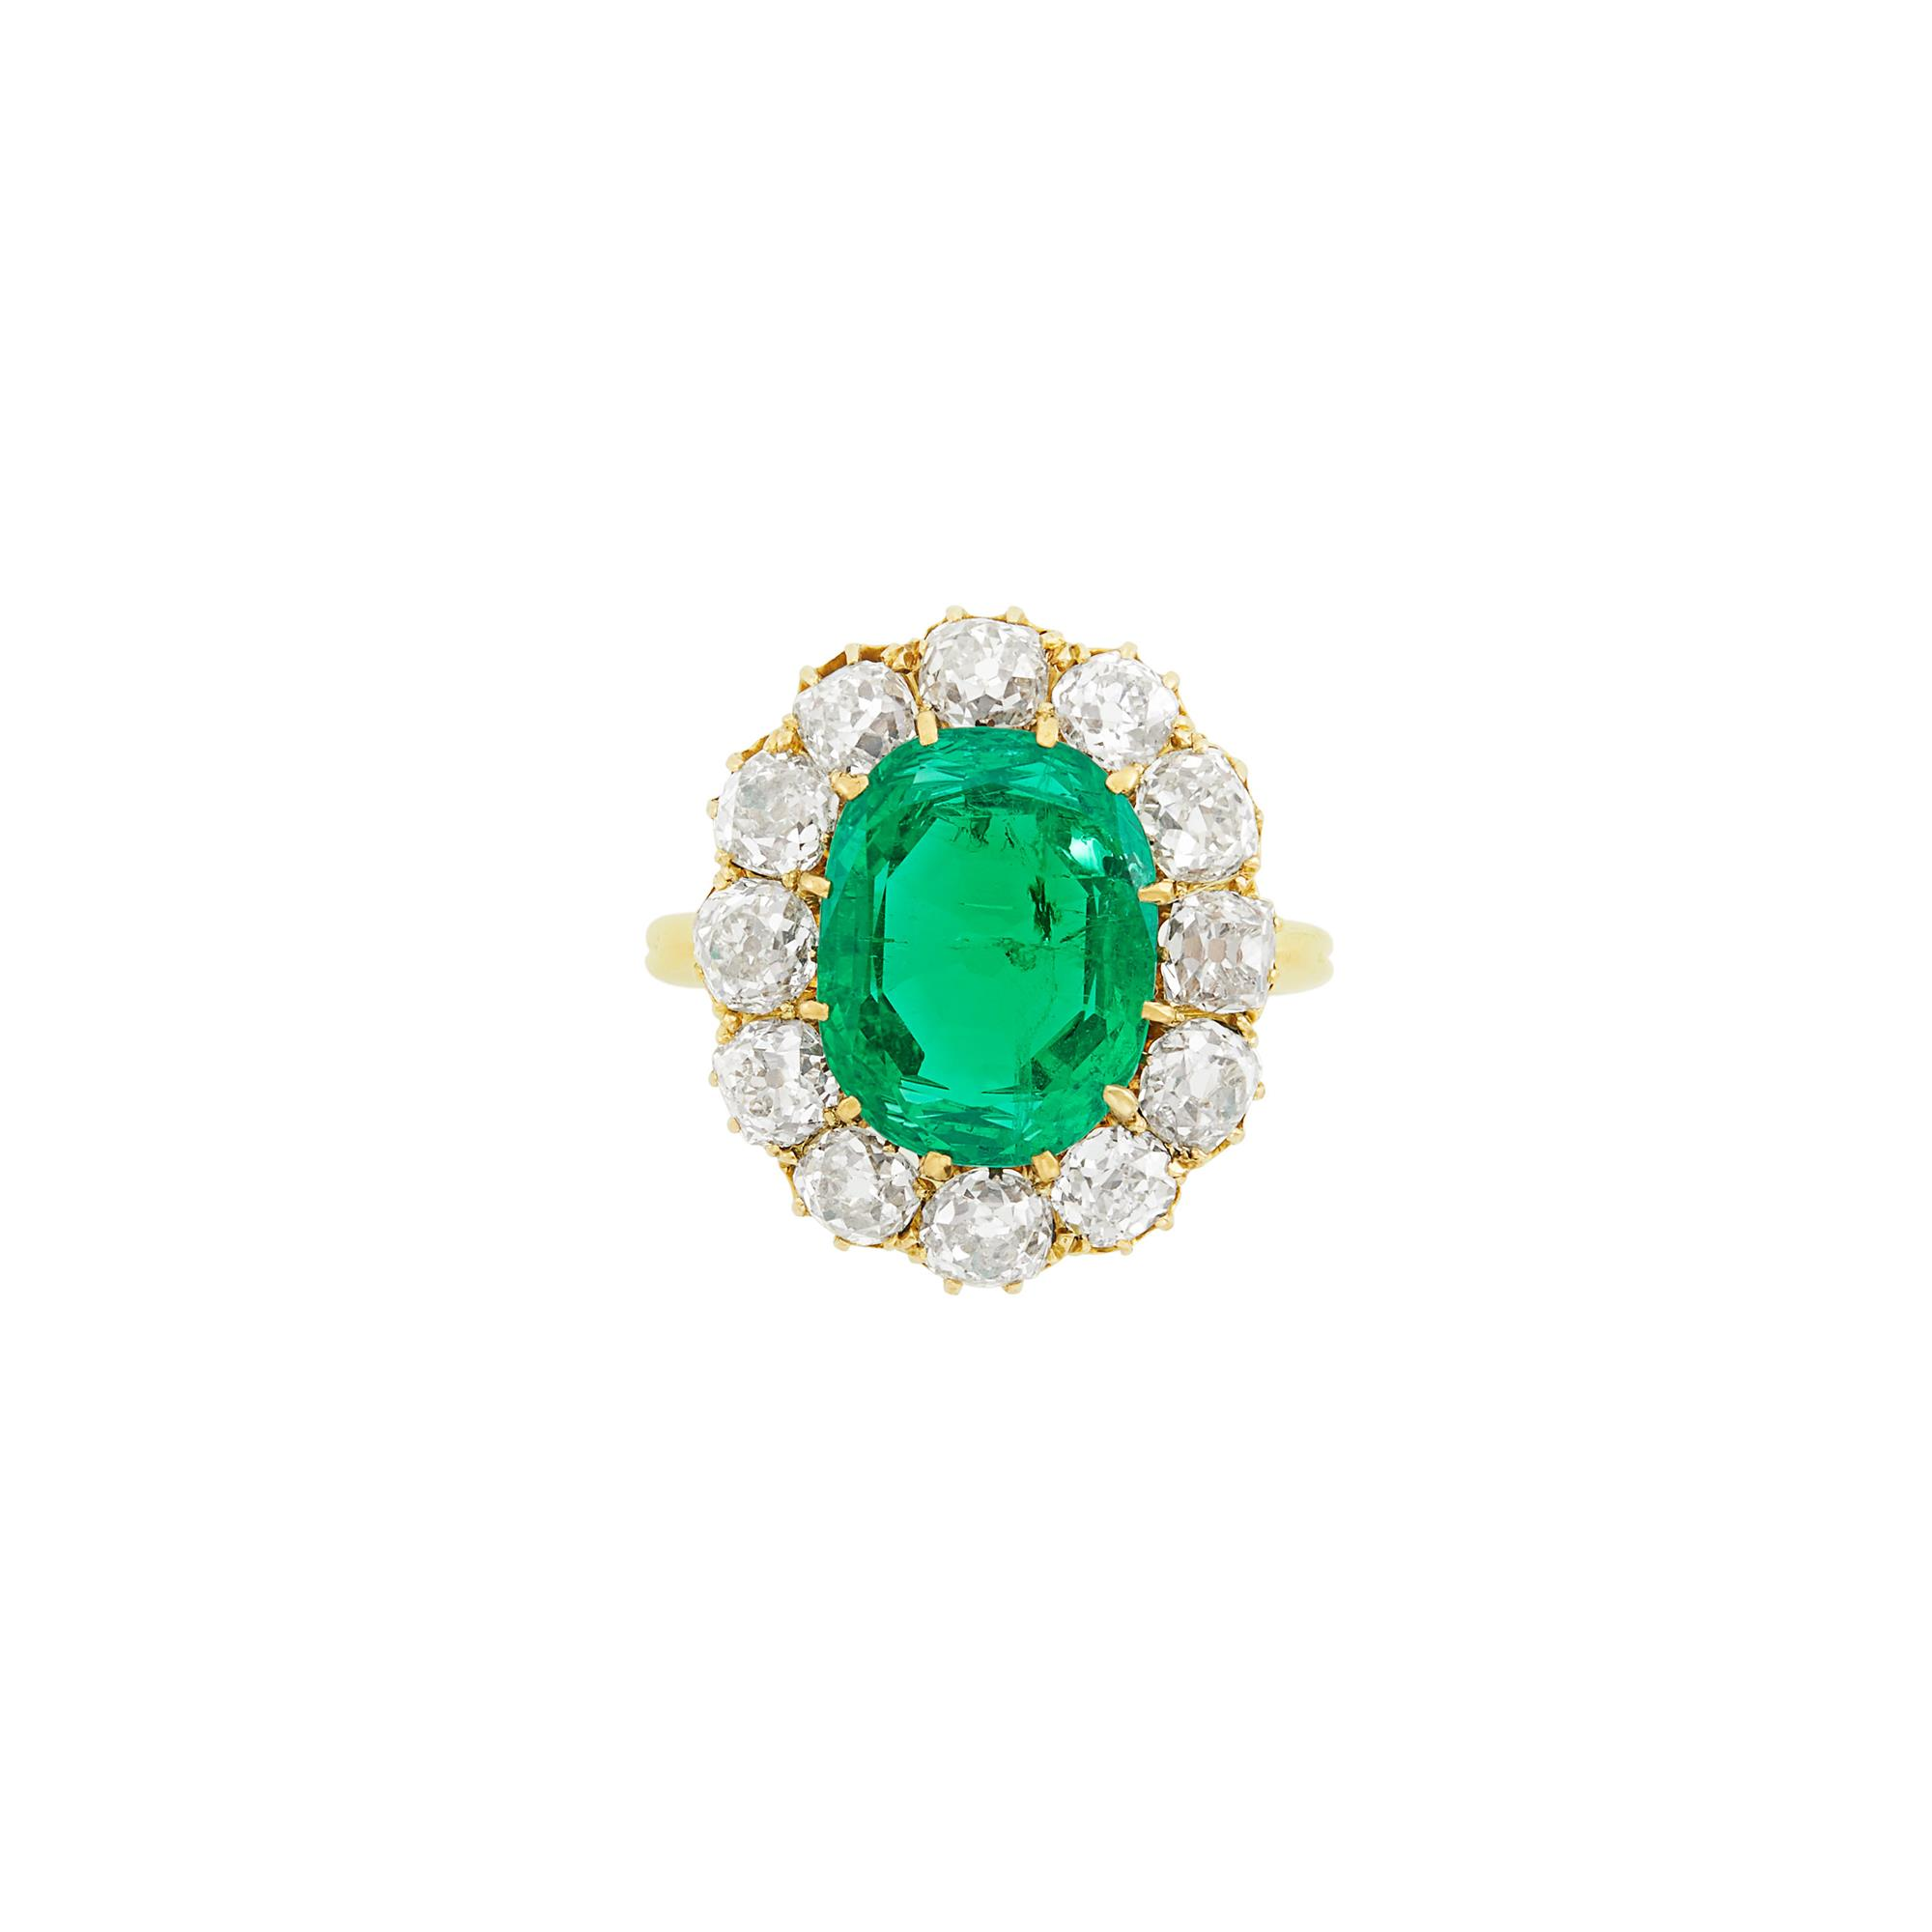 Lot image - Antique Gold, Emerald and Diamond Ring, Tiffany & Co.